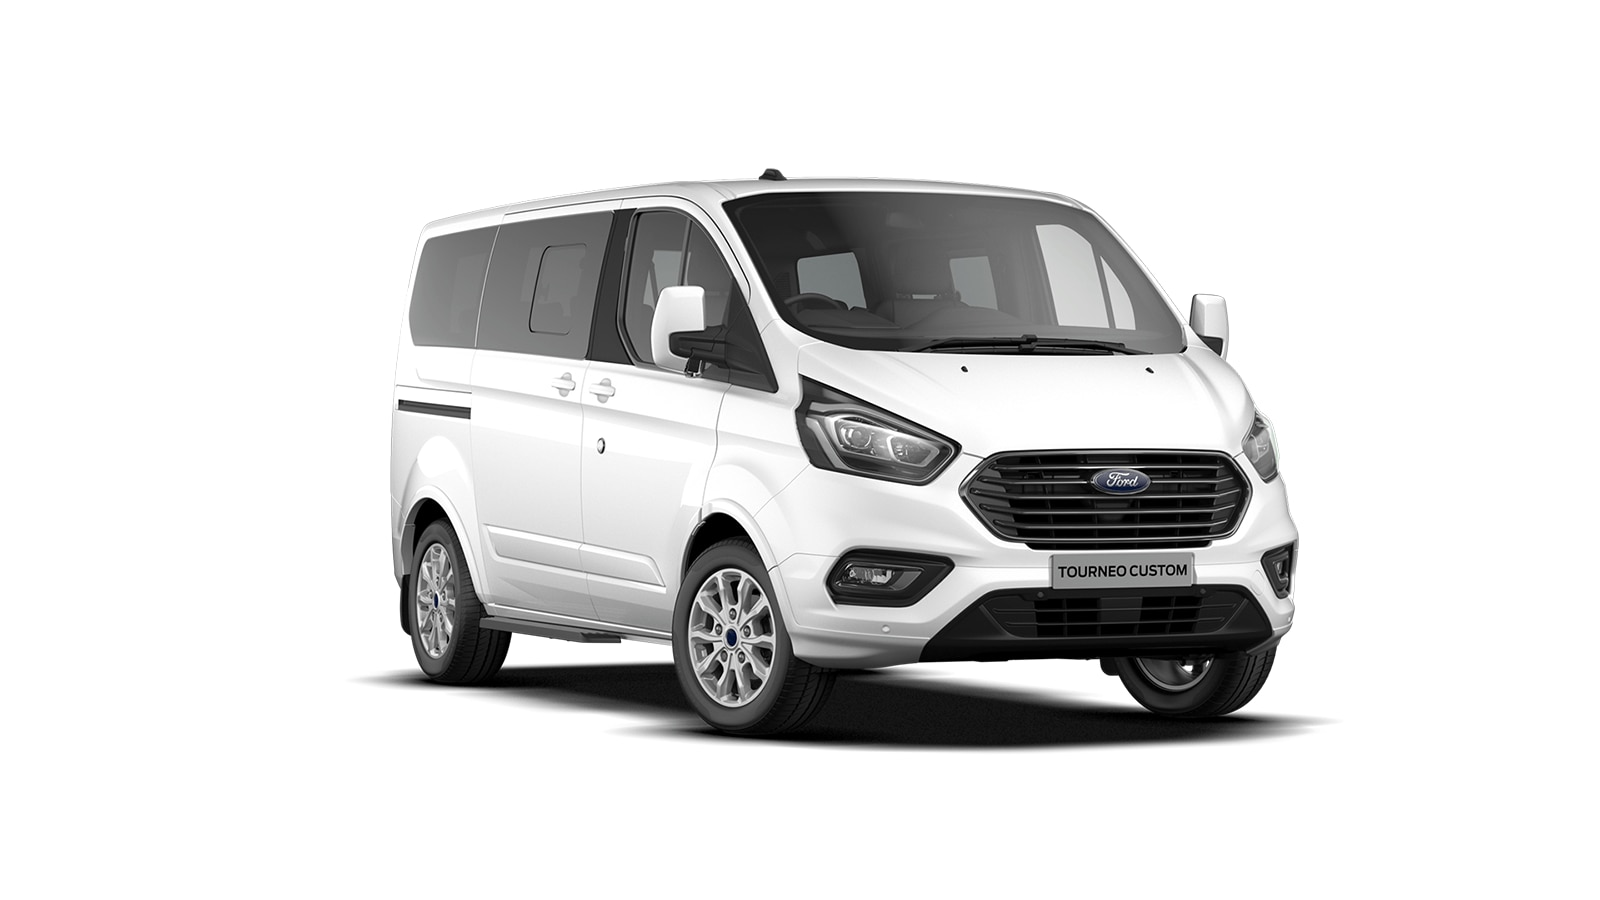 New Ford NEW TOURNEO CUSTOM PLUG-IN HYBRID